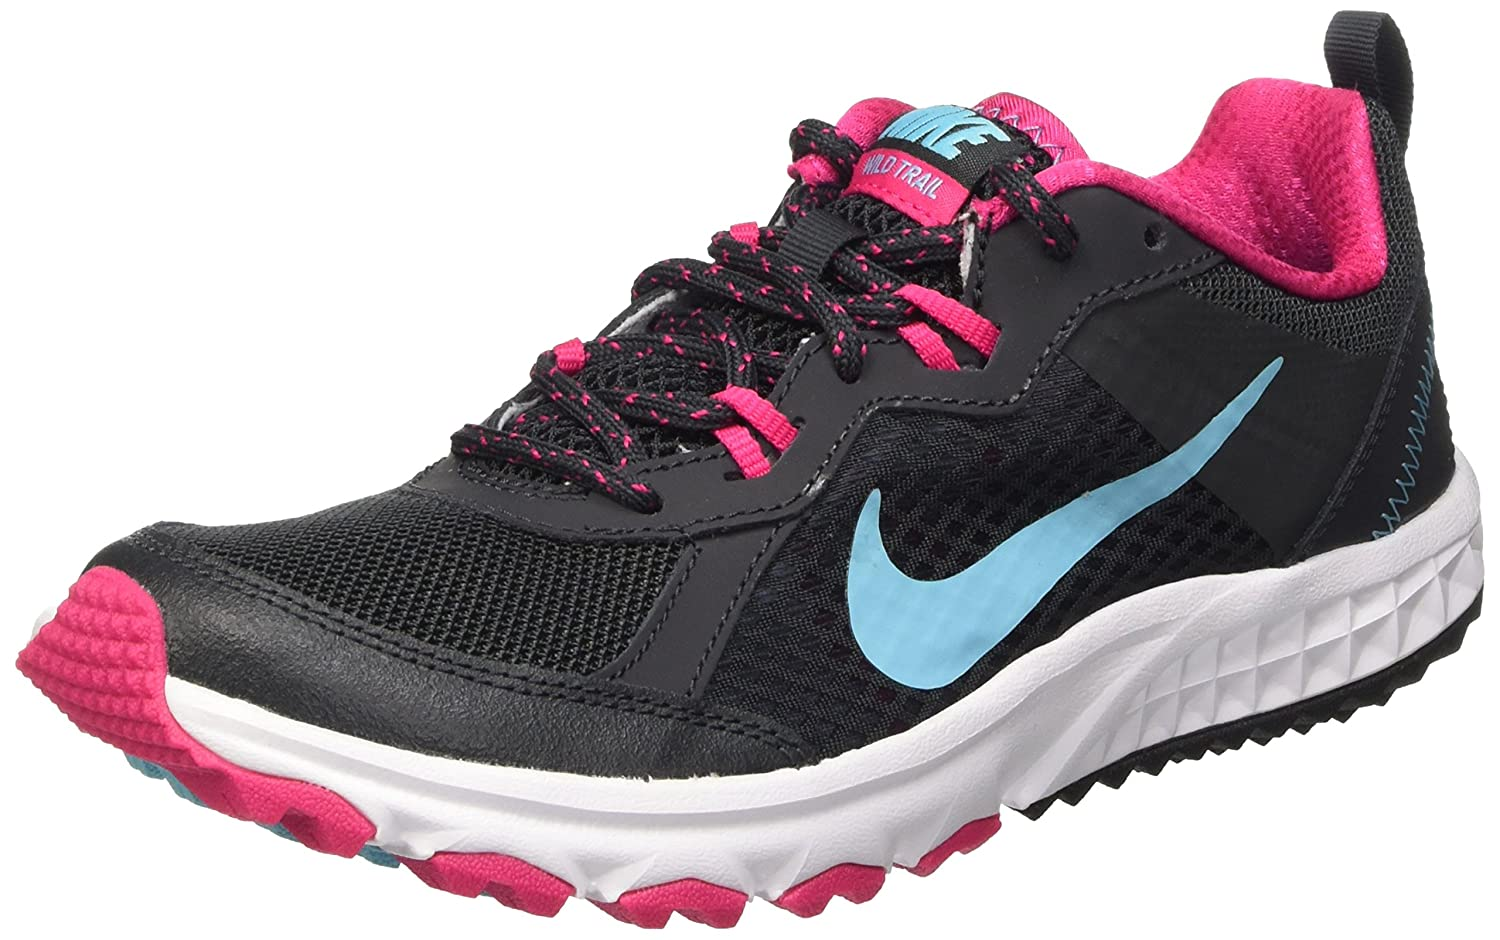 New Nike Lunarfly+ 3 Trail - Womens Trail Running Shoes - Grey/Pink/Yellow Online | Sportitude